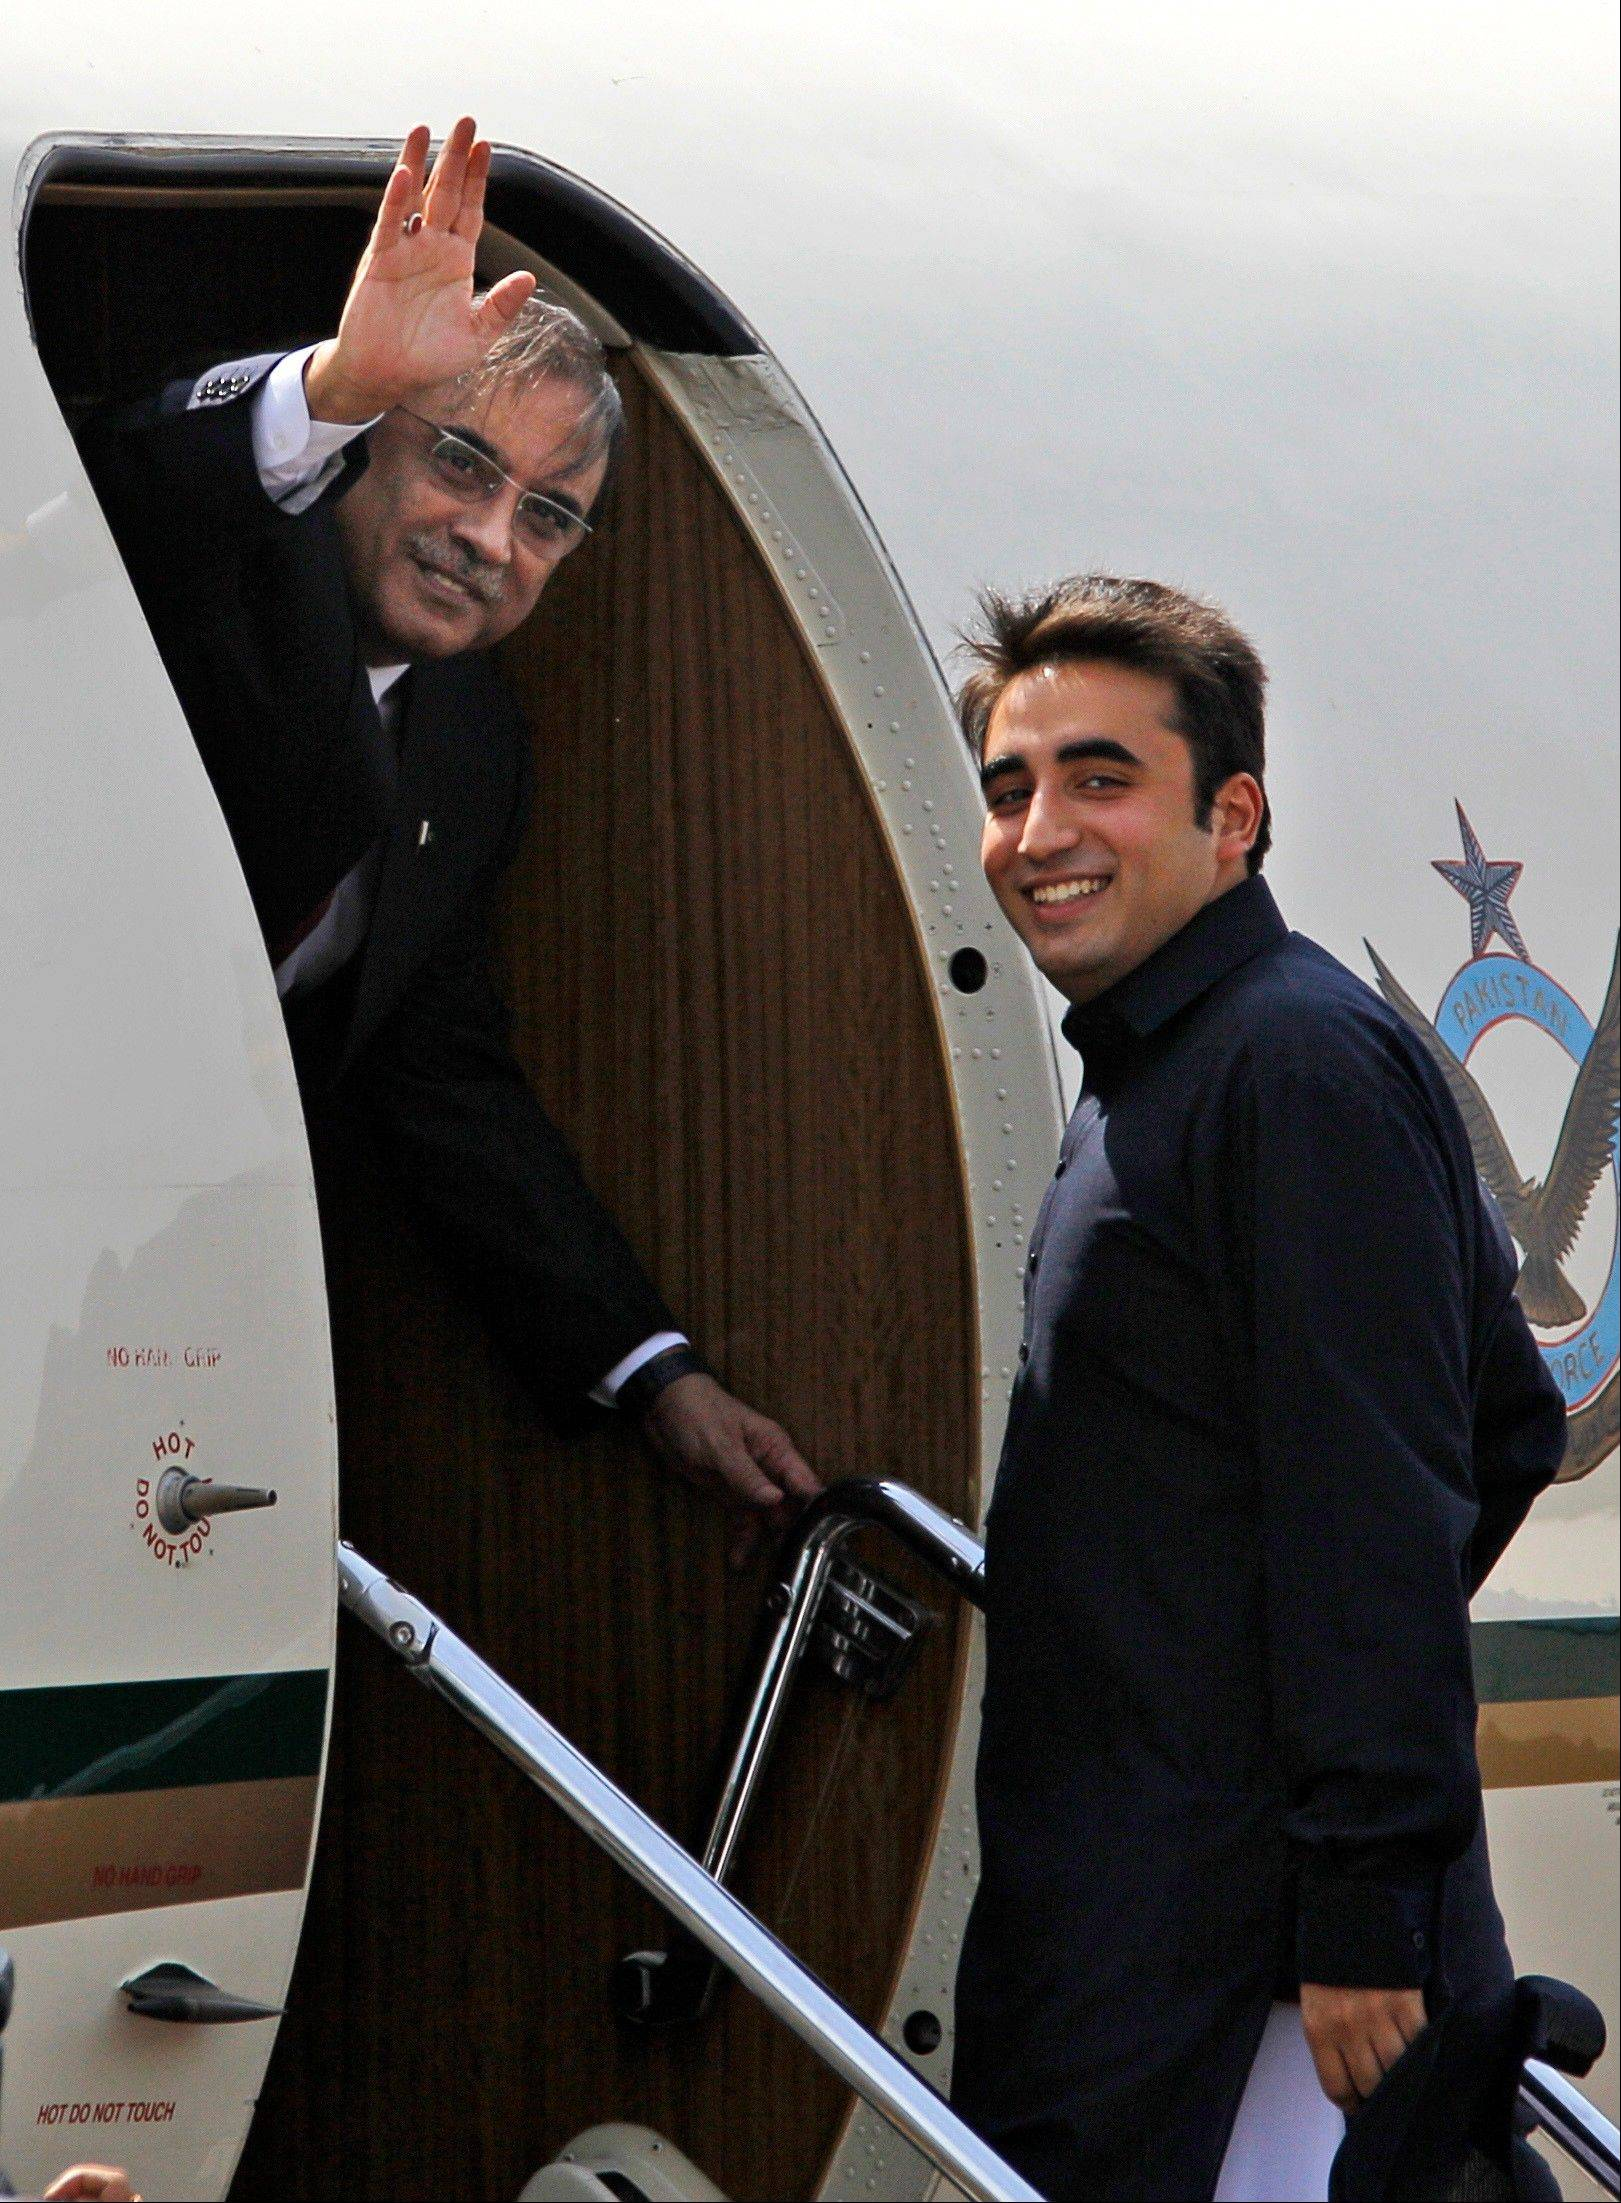 In this April 8, 2012 photo, PakistanI President Asif Ali Zardari, left, waves as his son Bilawal Bhutto Zardari looks on while departing for Jaipur at the Palam Airfield in New Delhi, India.